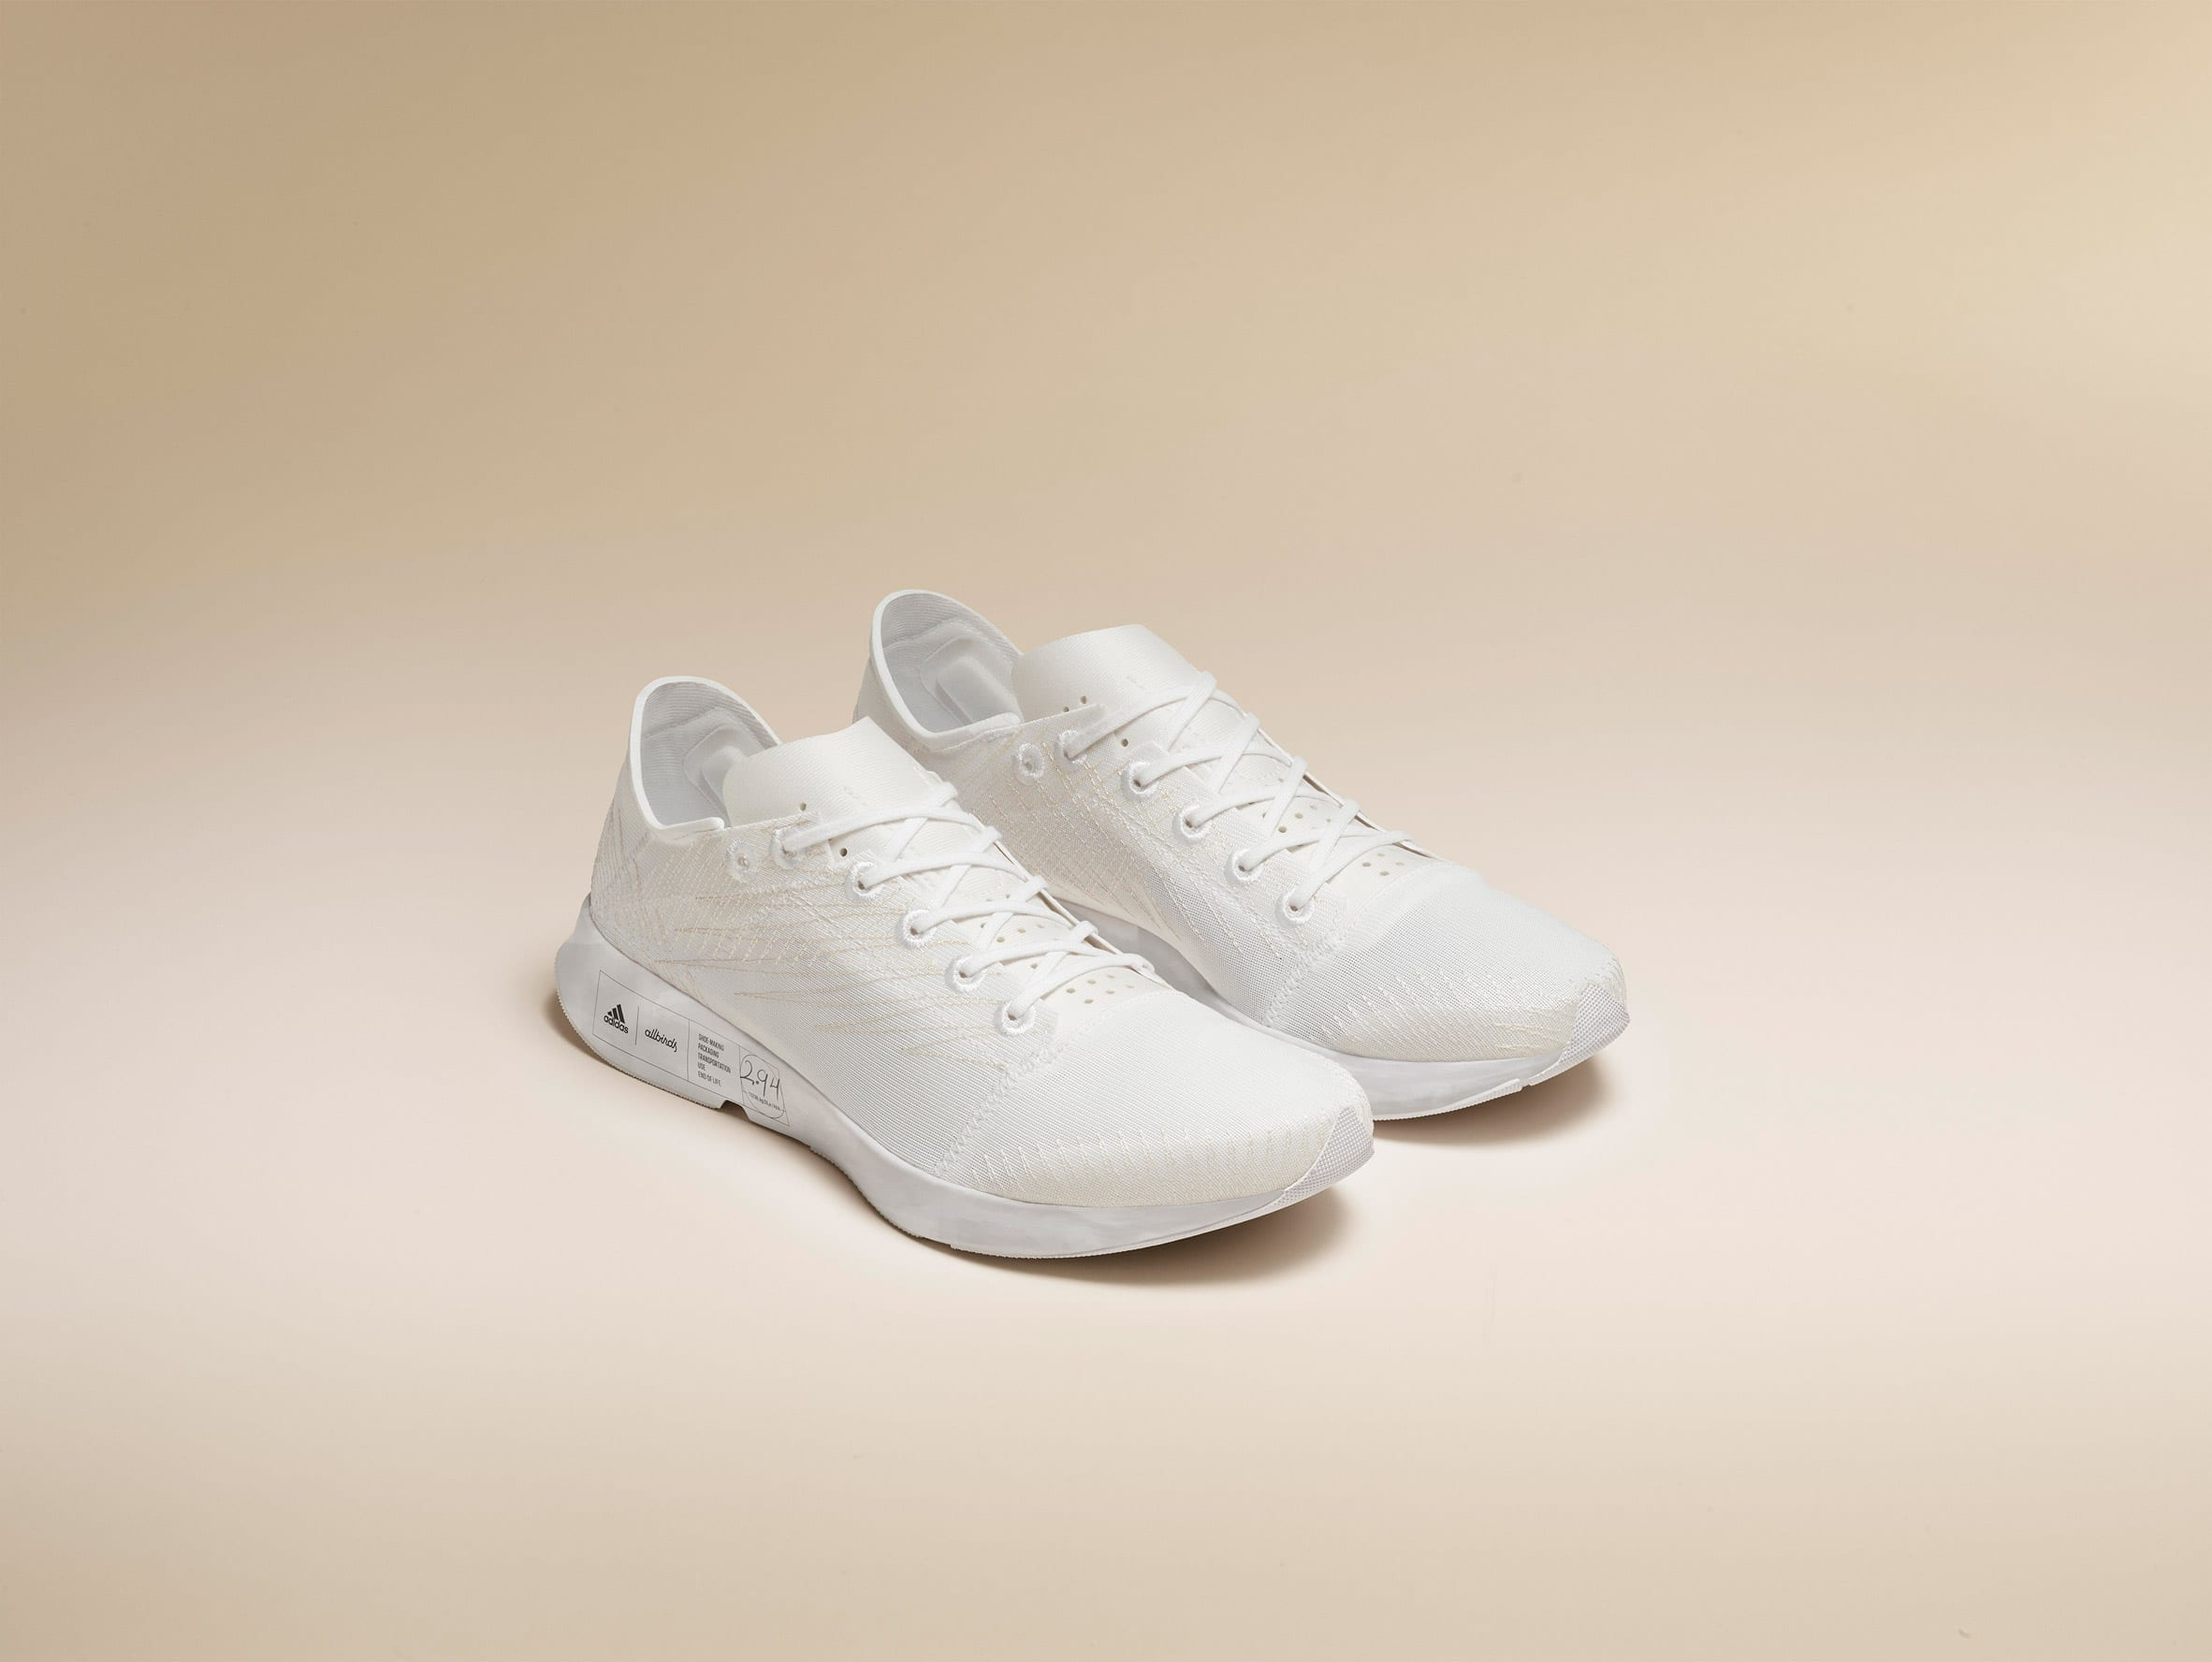 Low-carbon trainers by Adidas and Allbirds